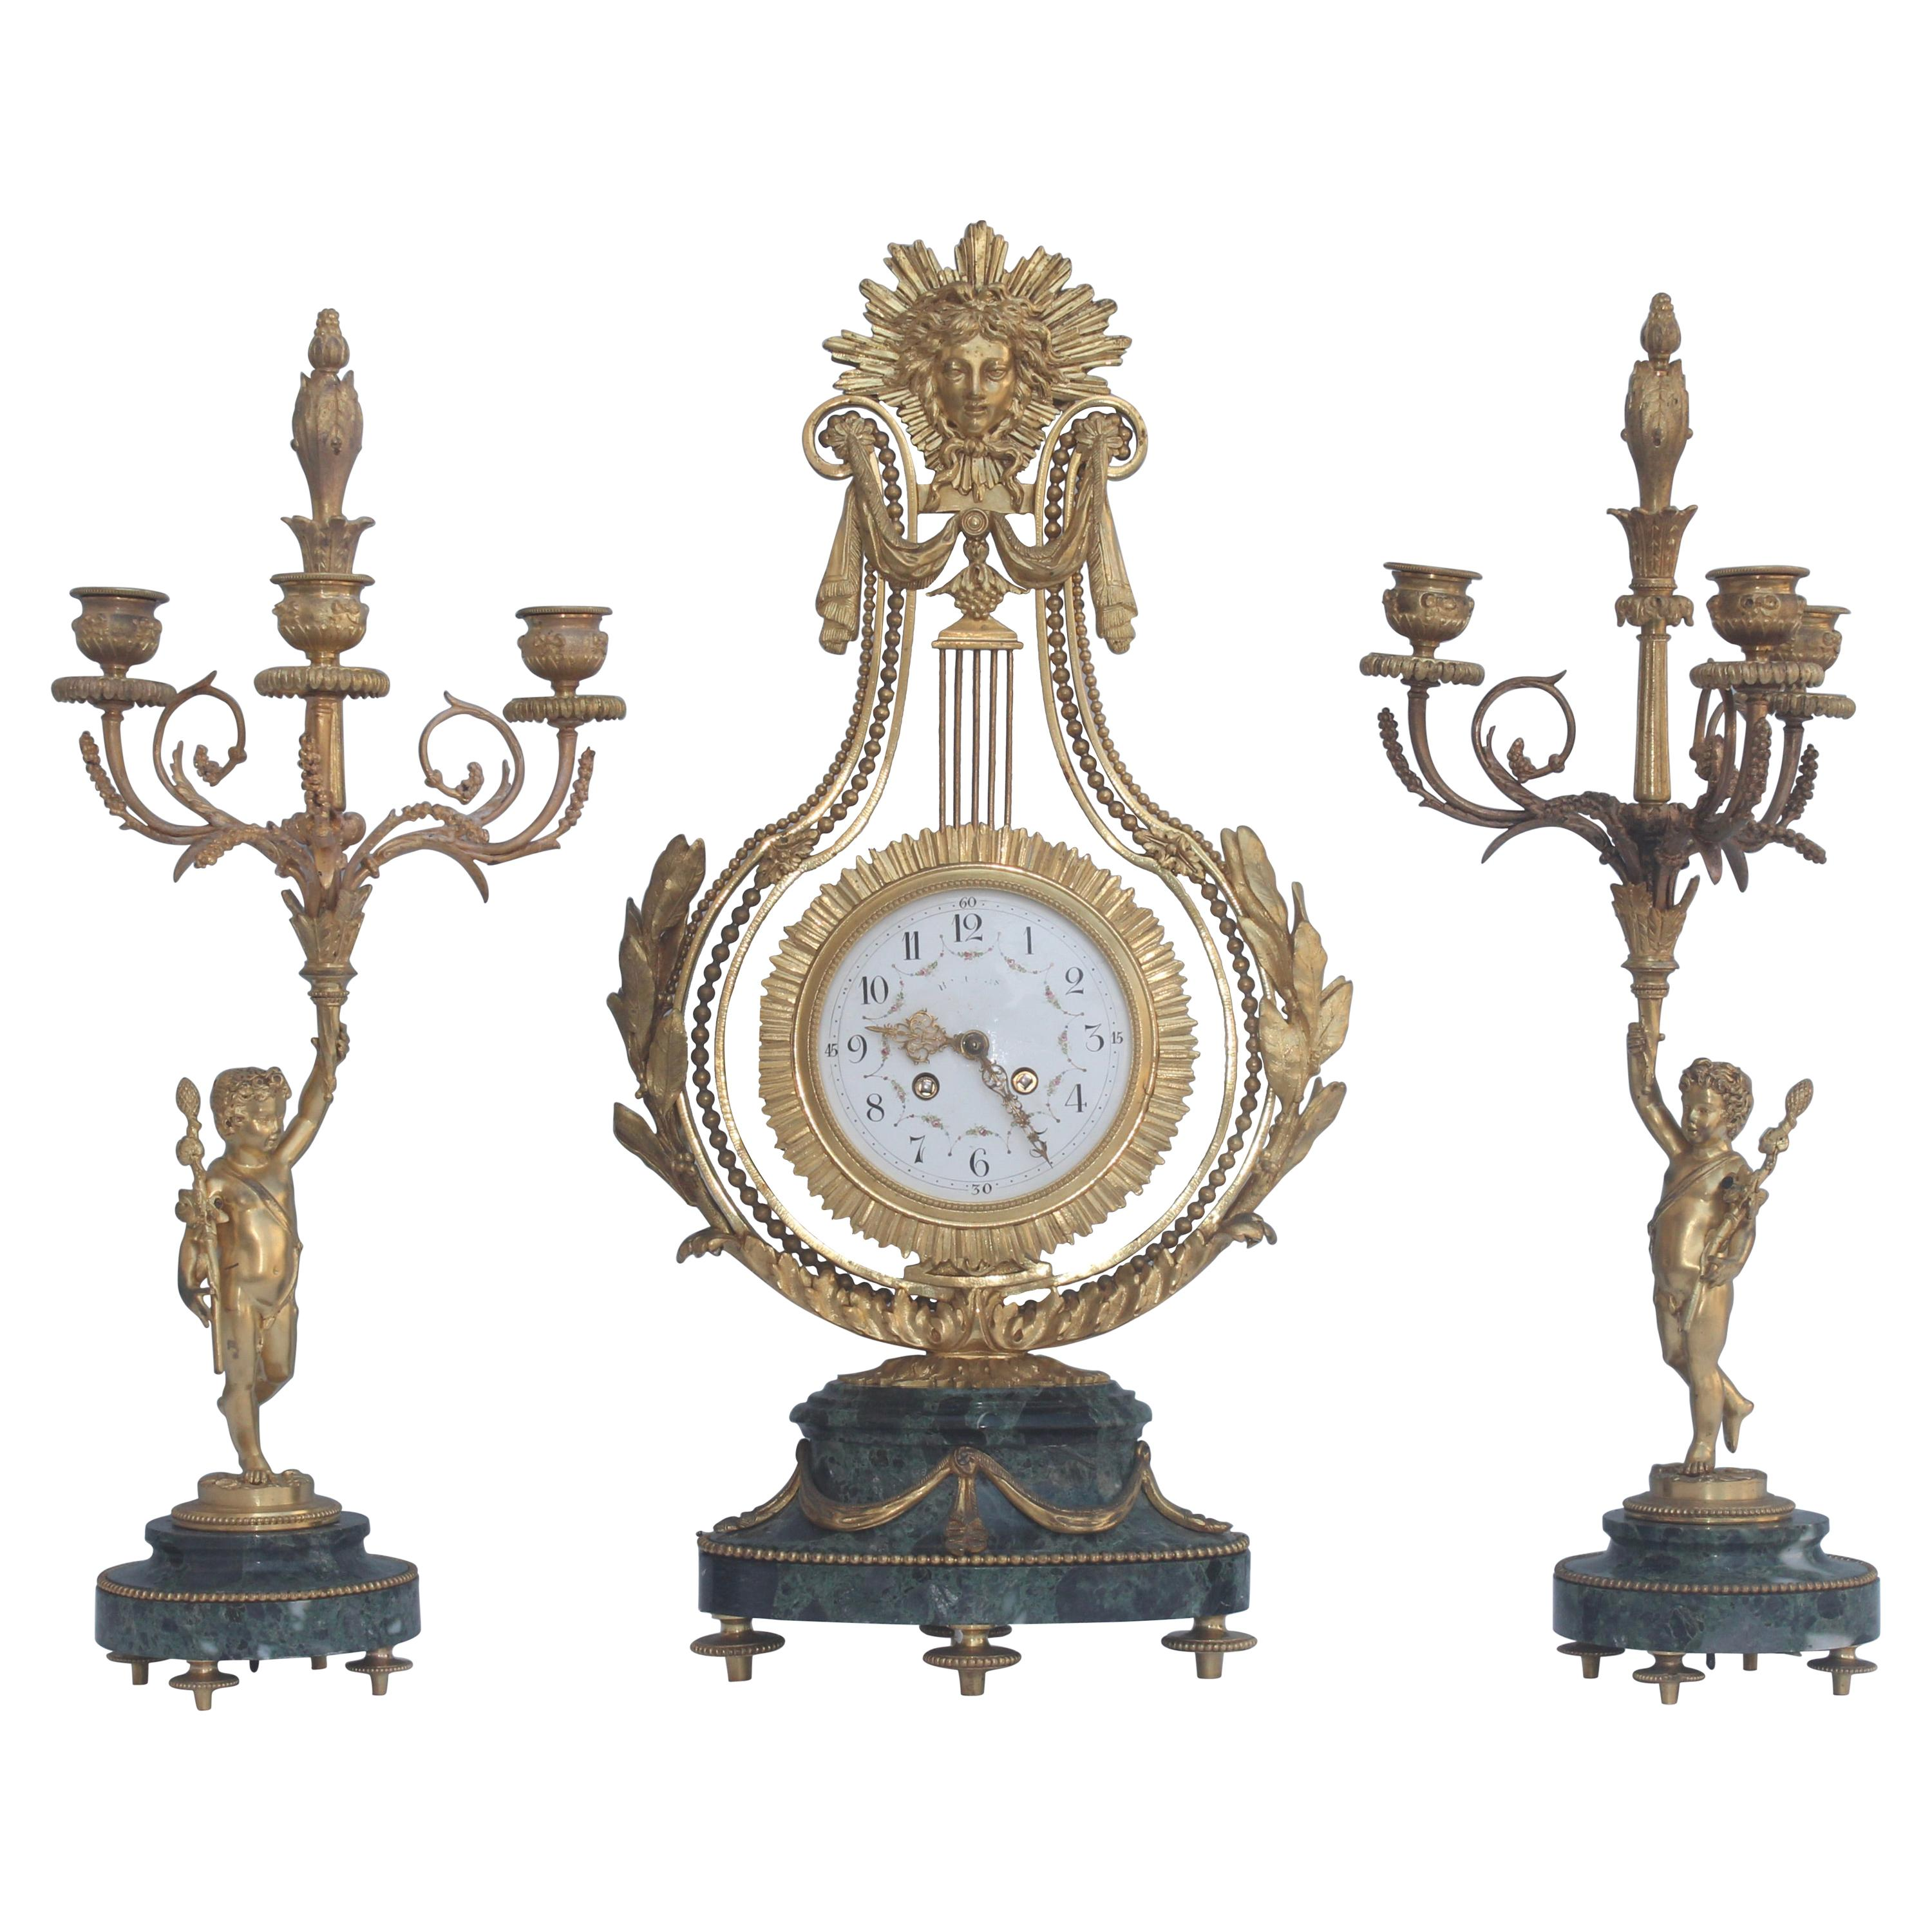 19th Century French Ormolu and Marble Three-Piece Lyre Shaped Clock Garniture